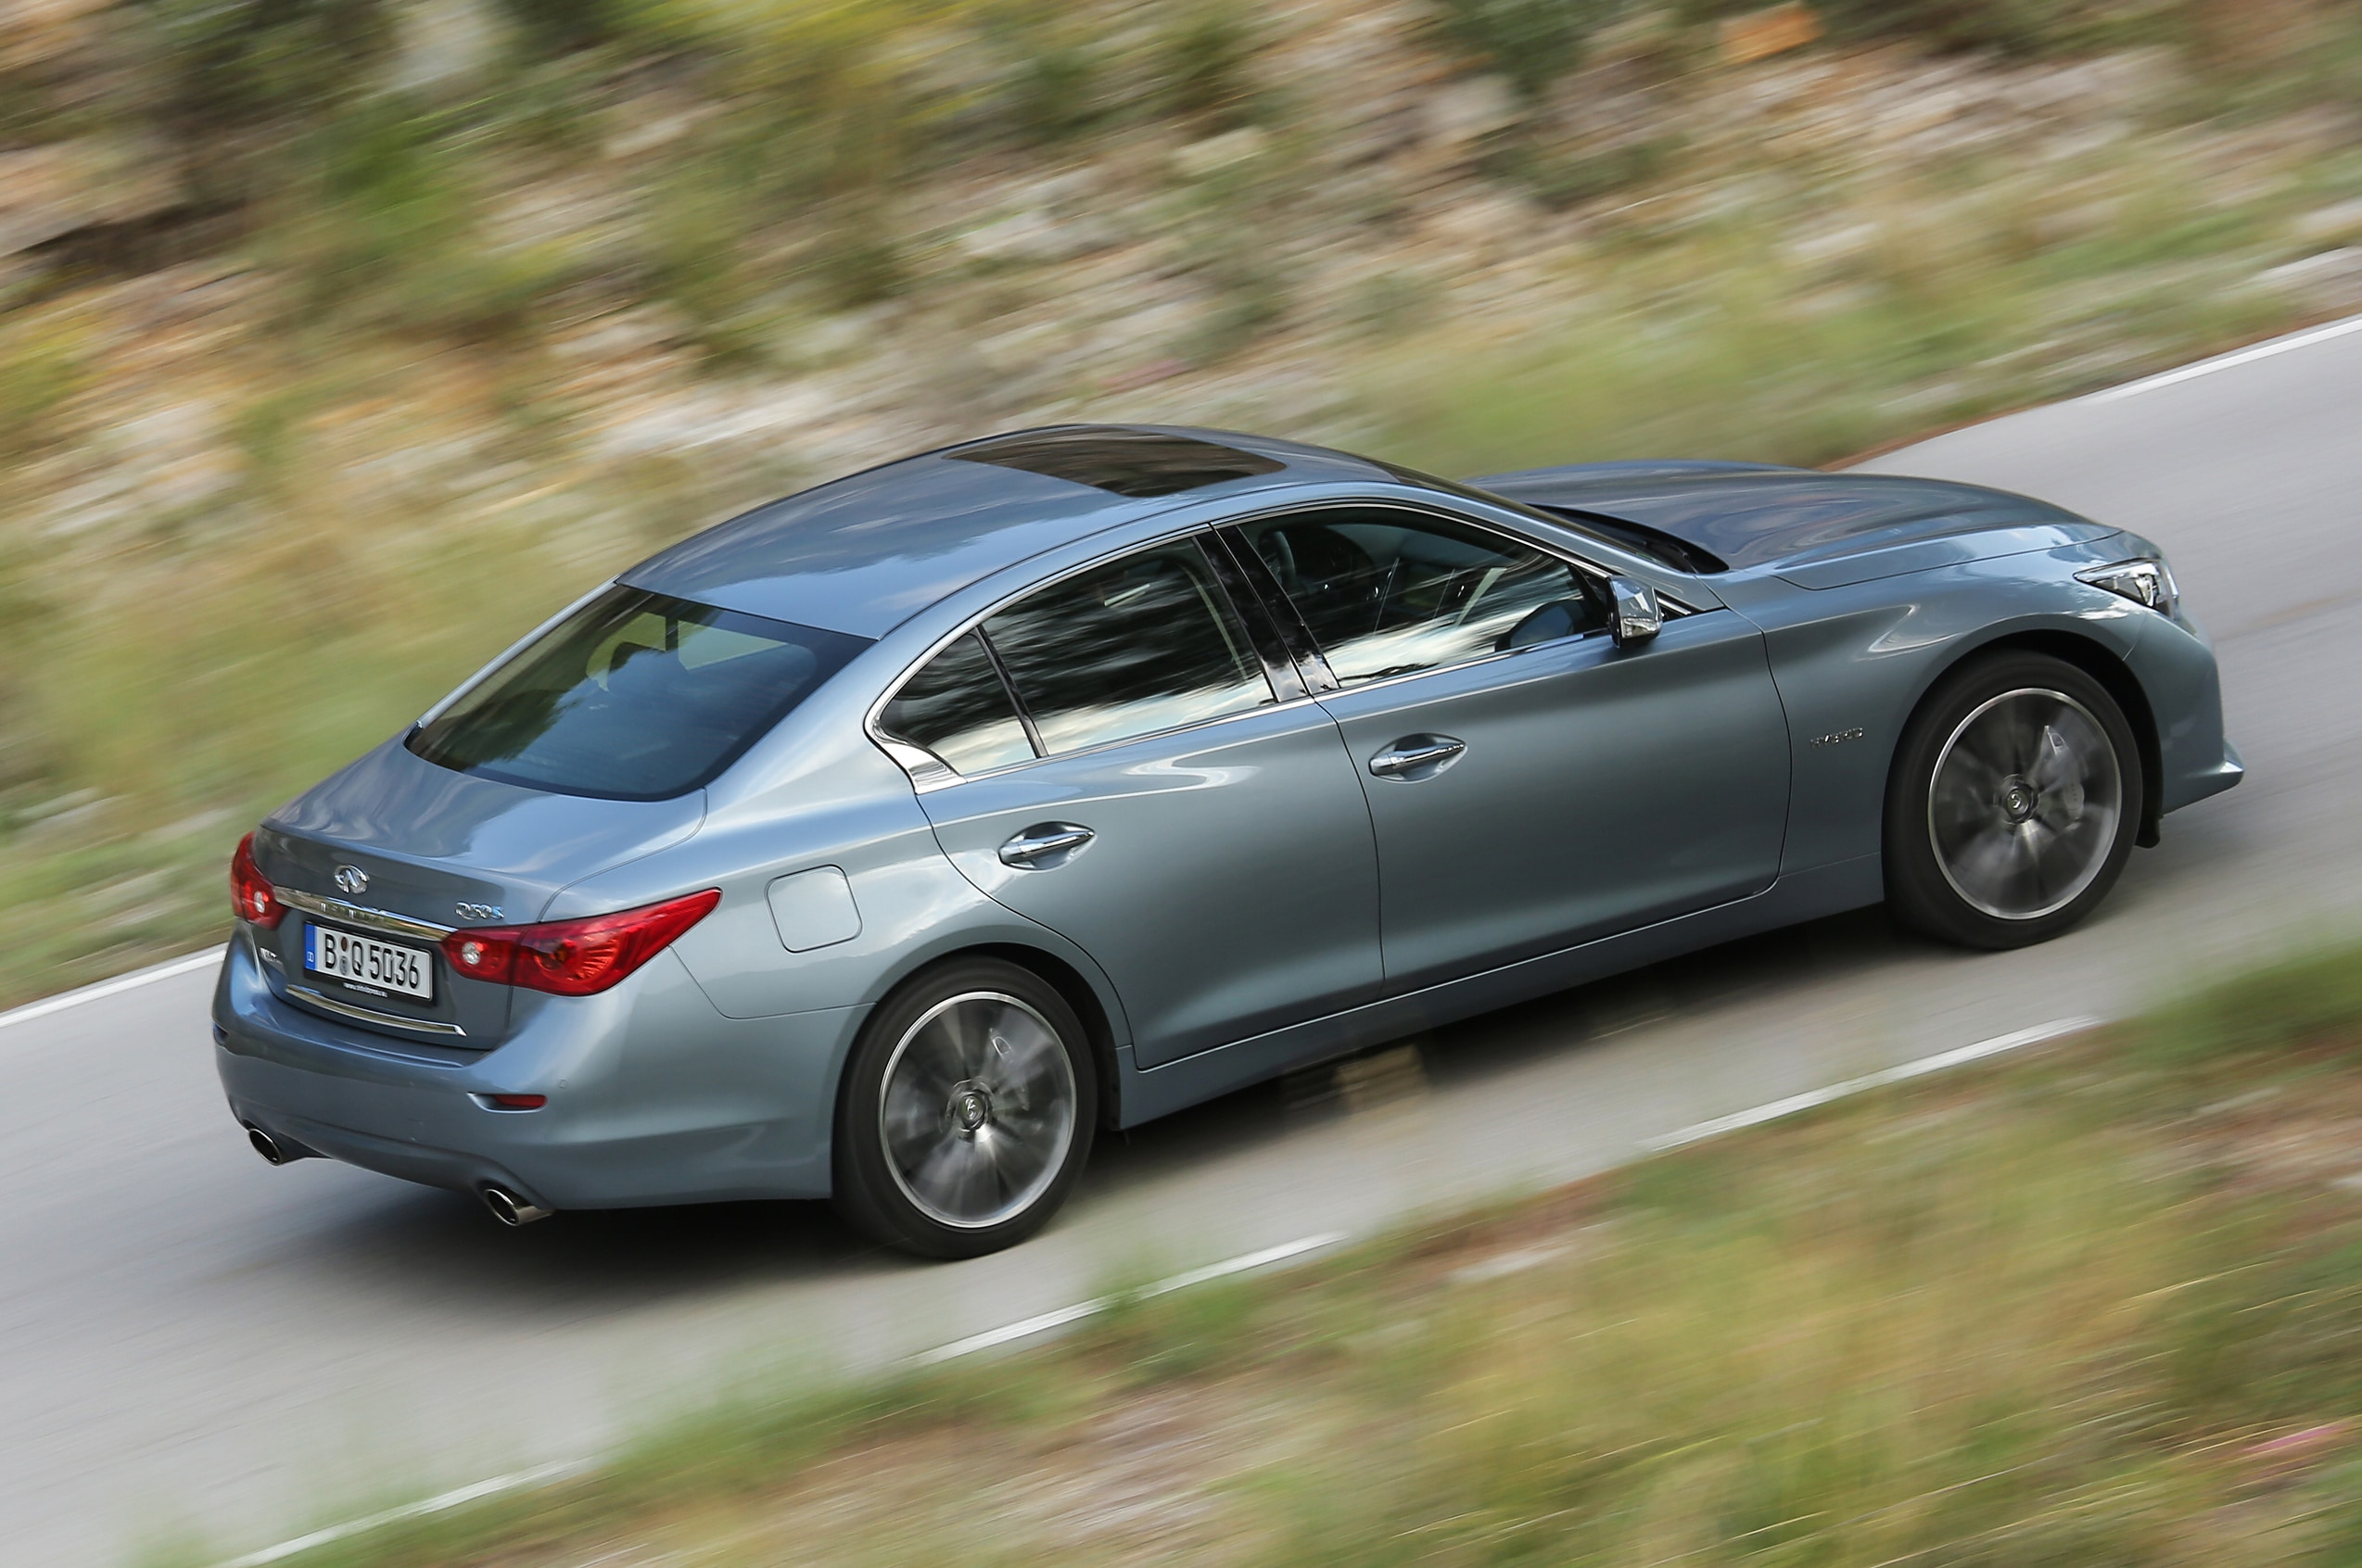 2014 infiniti q50 gains turbocharged four cylinder engine in china. Black Bedroom Furniture Sets. Home Design Ideas